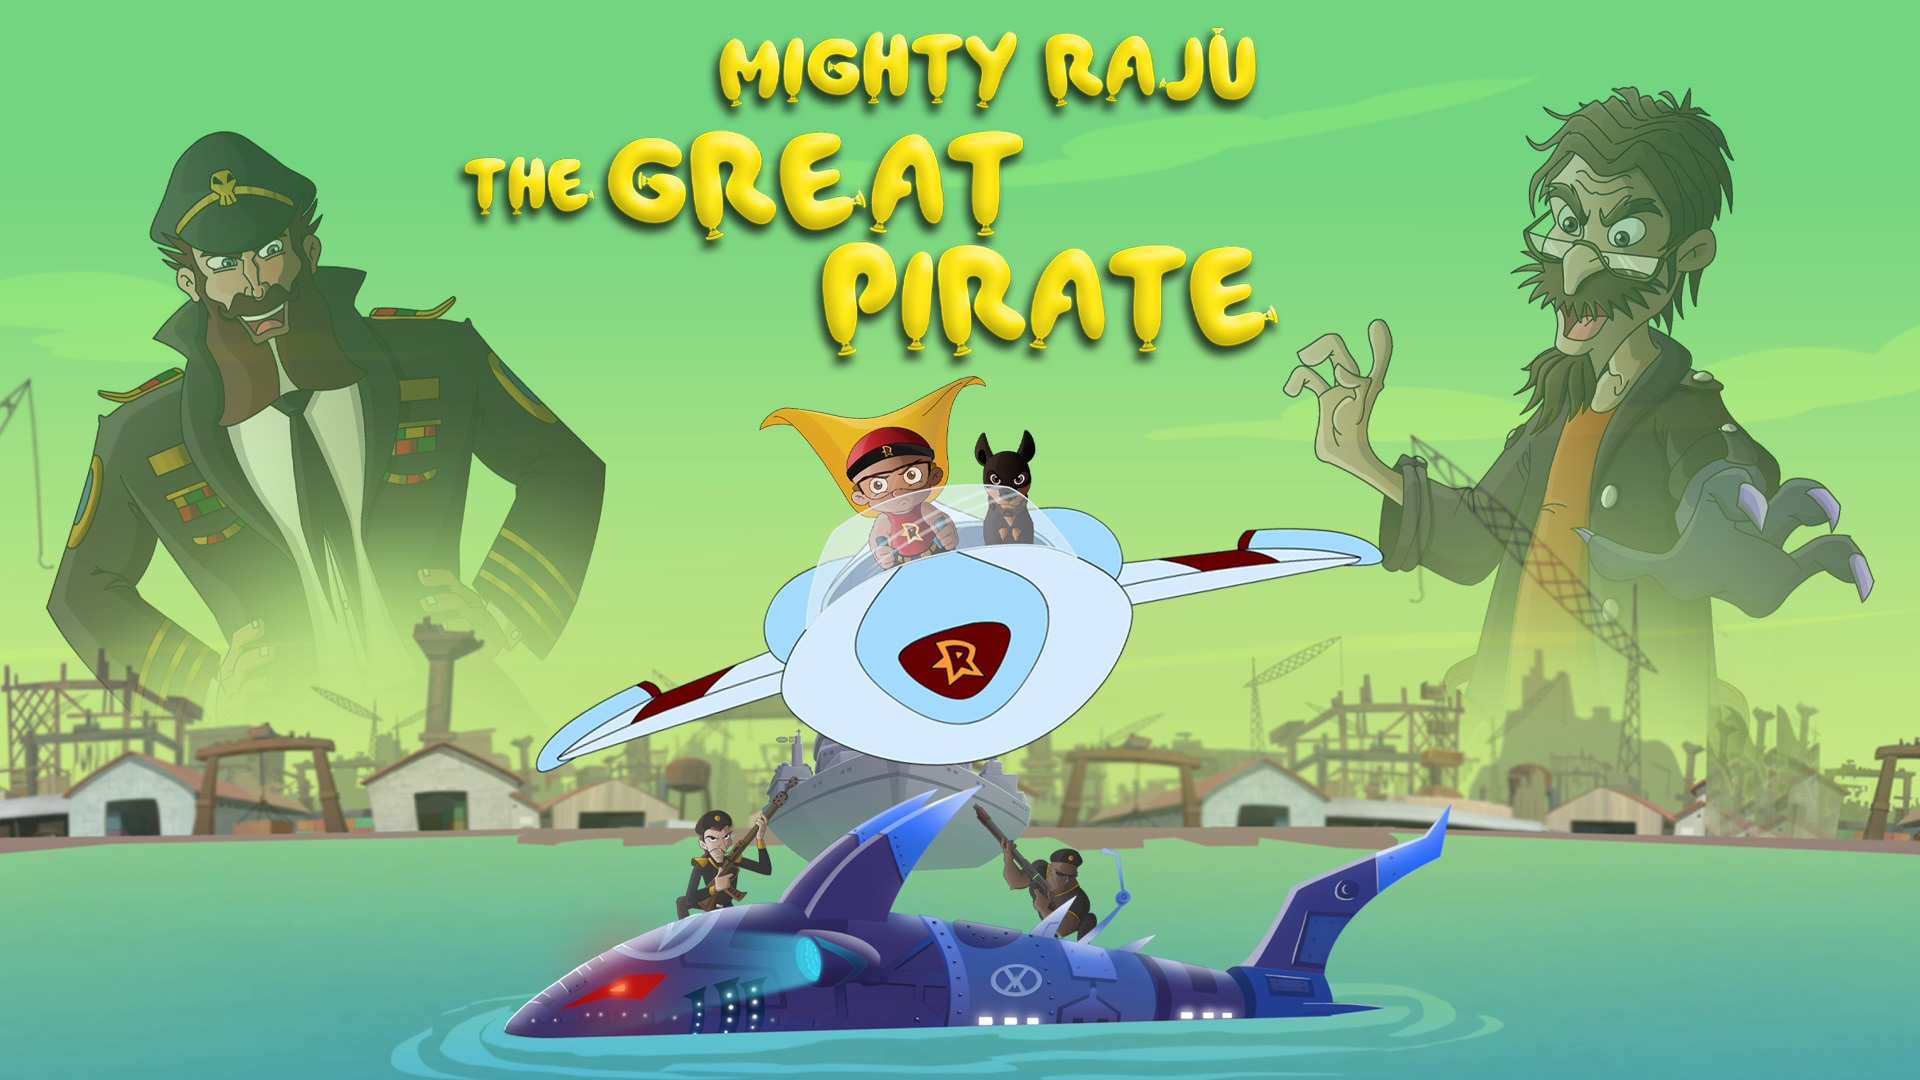 Mighty Raju The Great Pirate Full Movie In Telugu